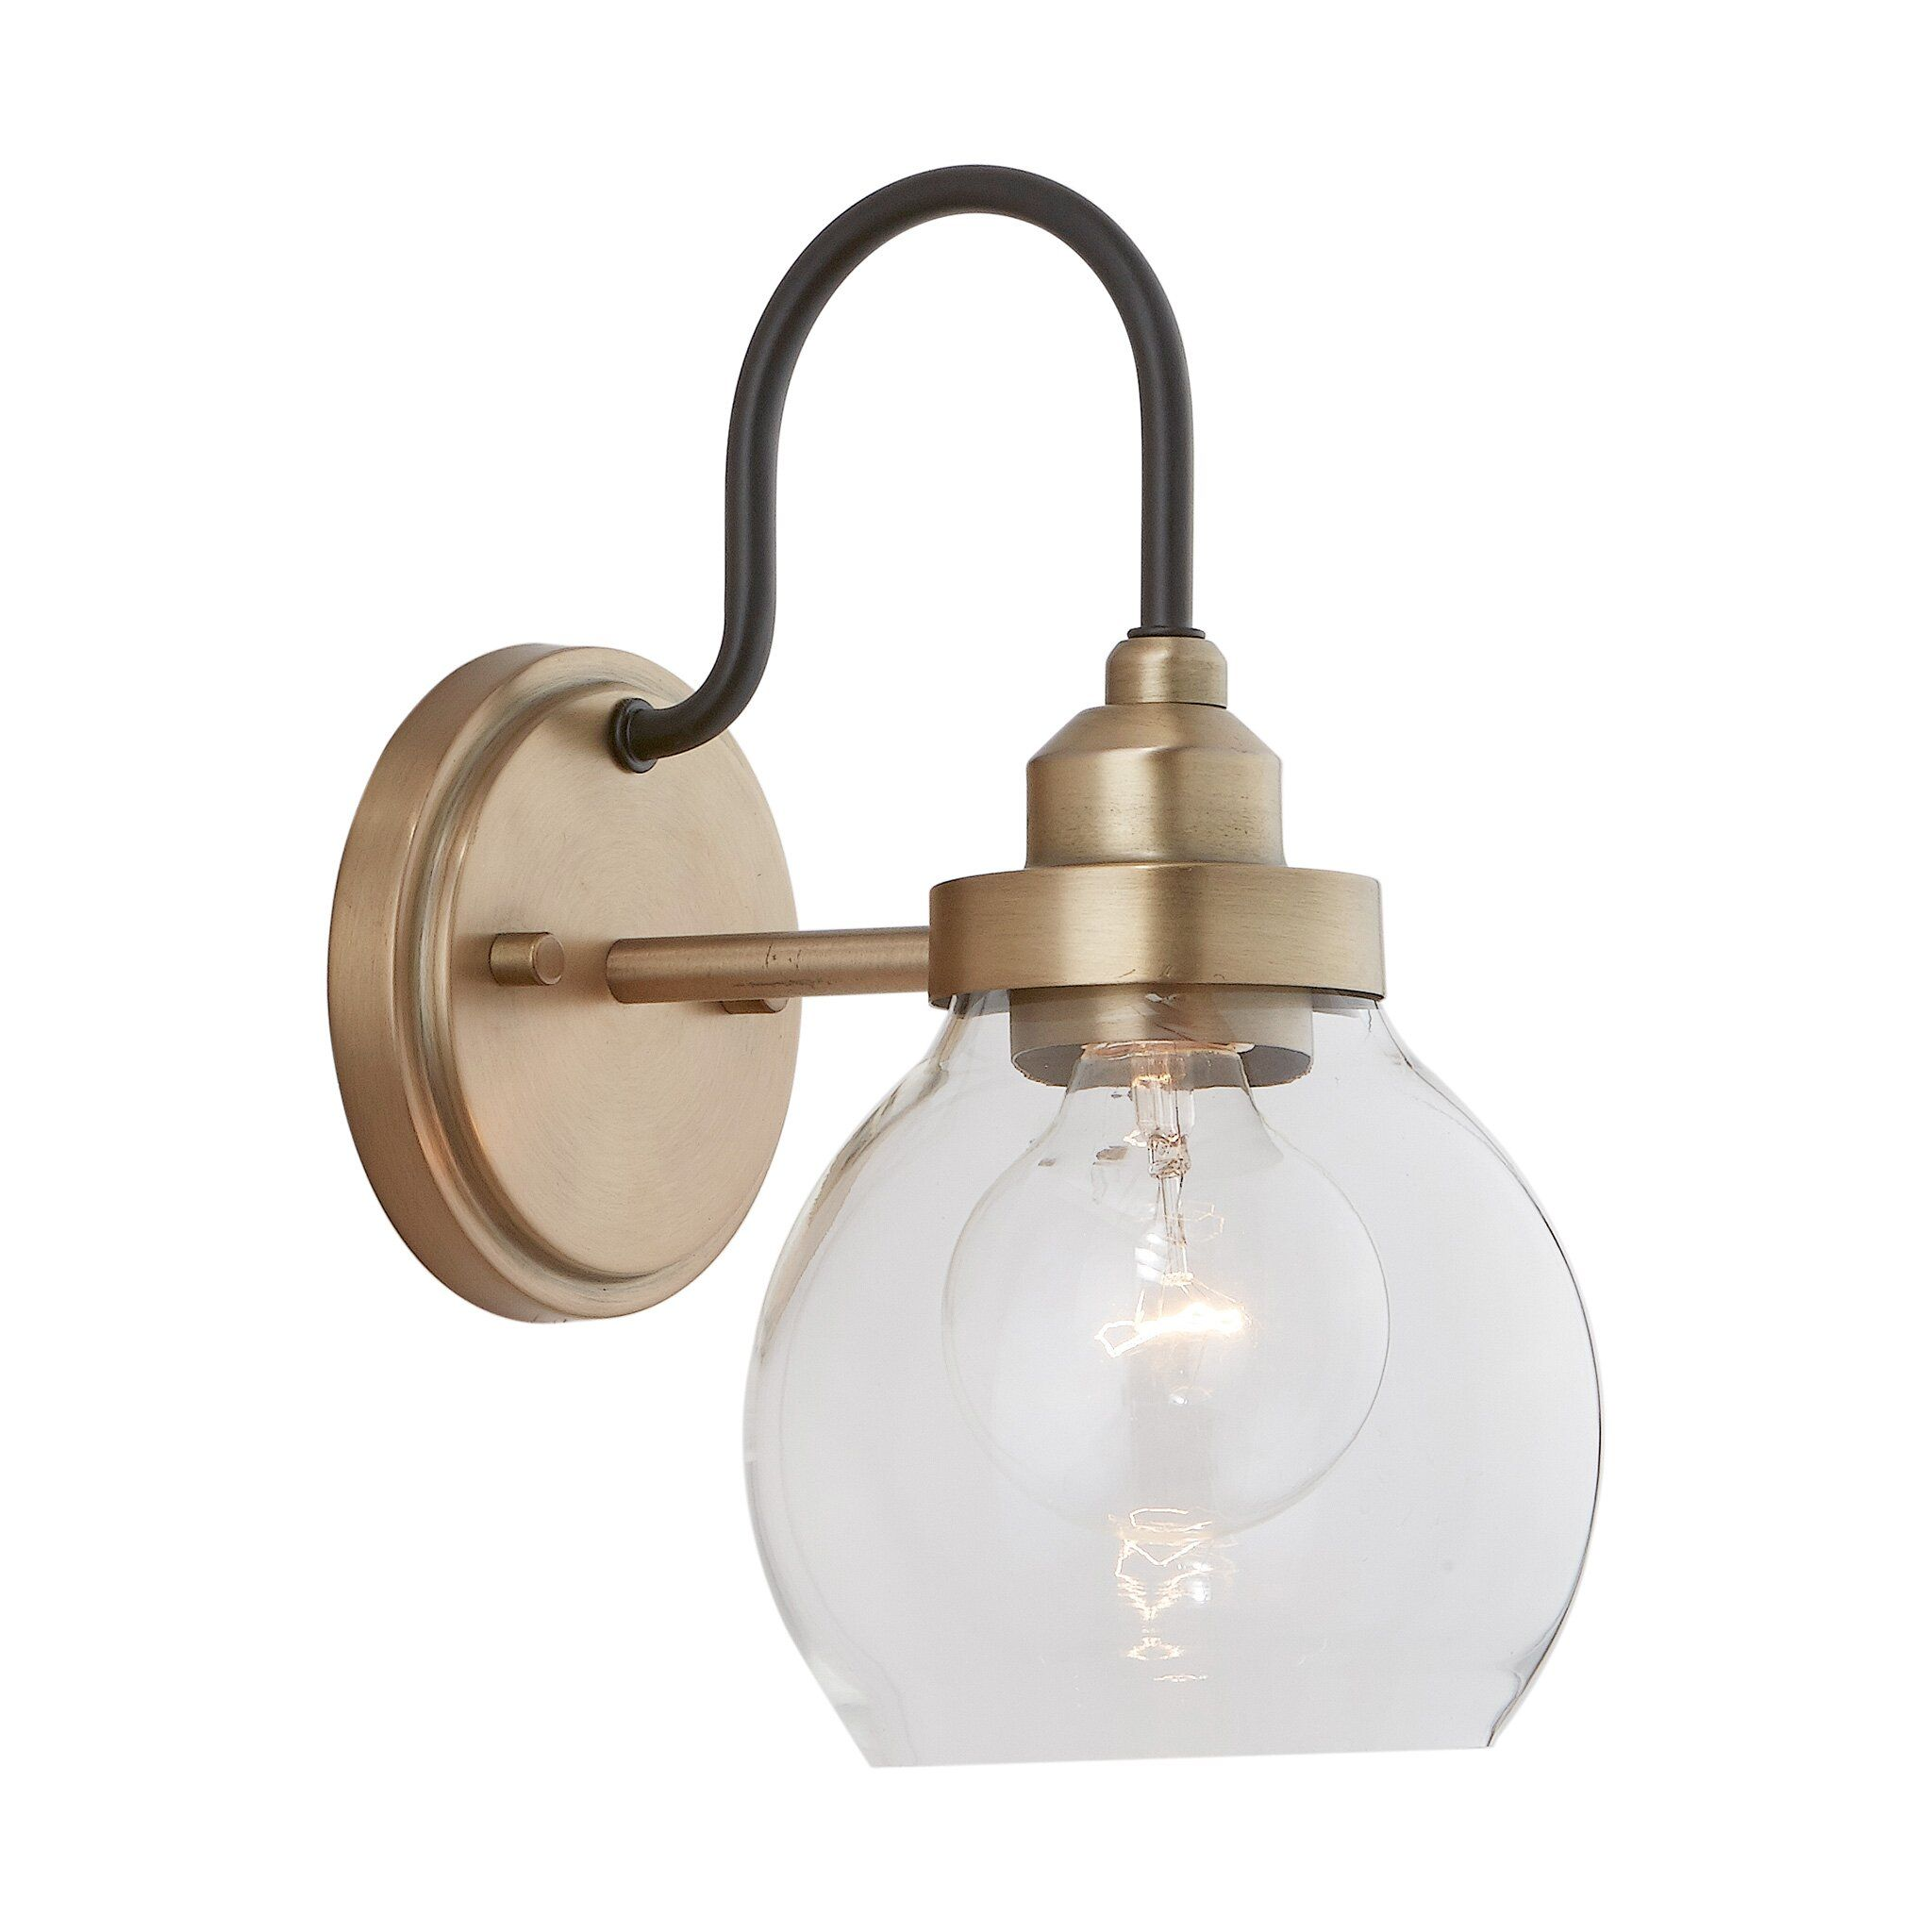 Llewellyn 1 Light Armed Sconce In 2021 Wall Lights Sconces Bathroom Sconces